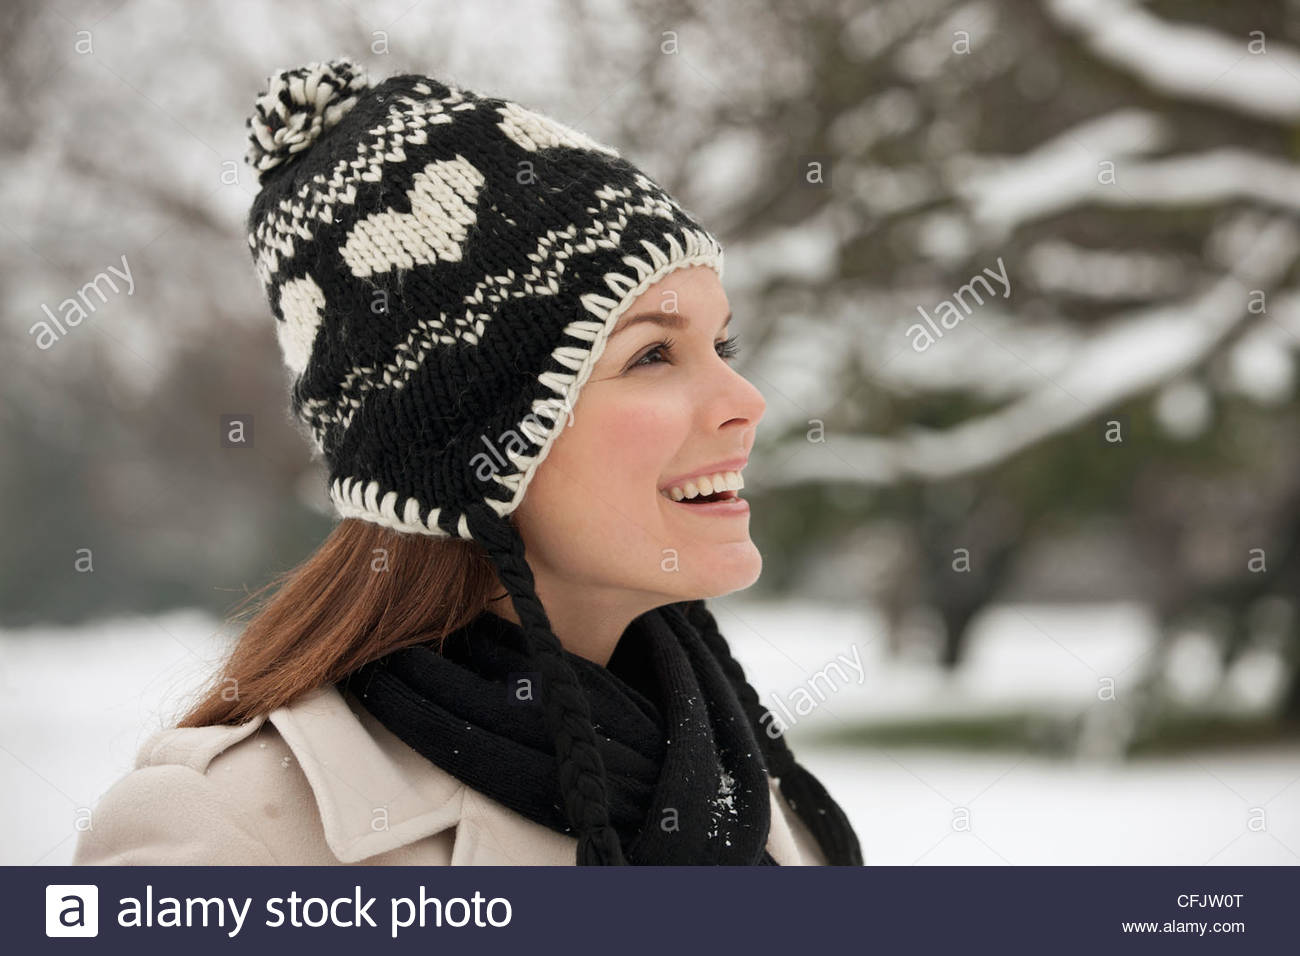 A young woman wearing a woolen hat, admiring the snow - Stock Image